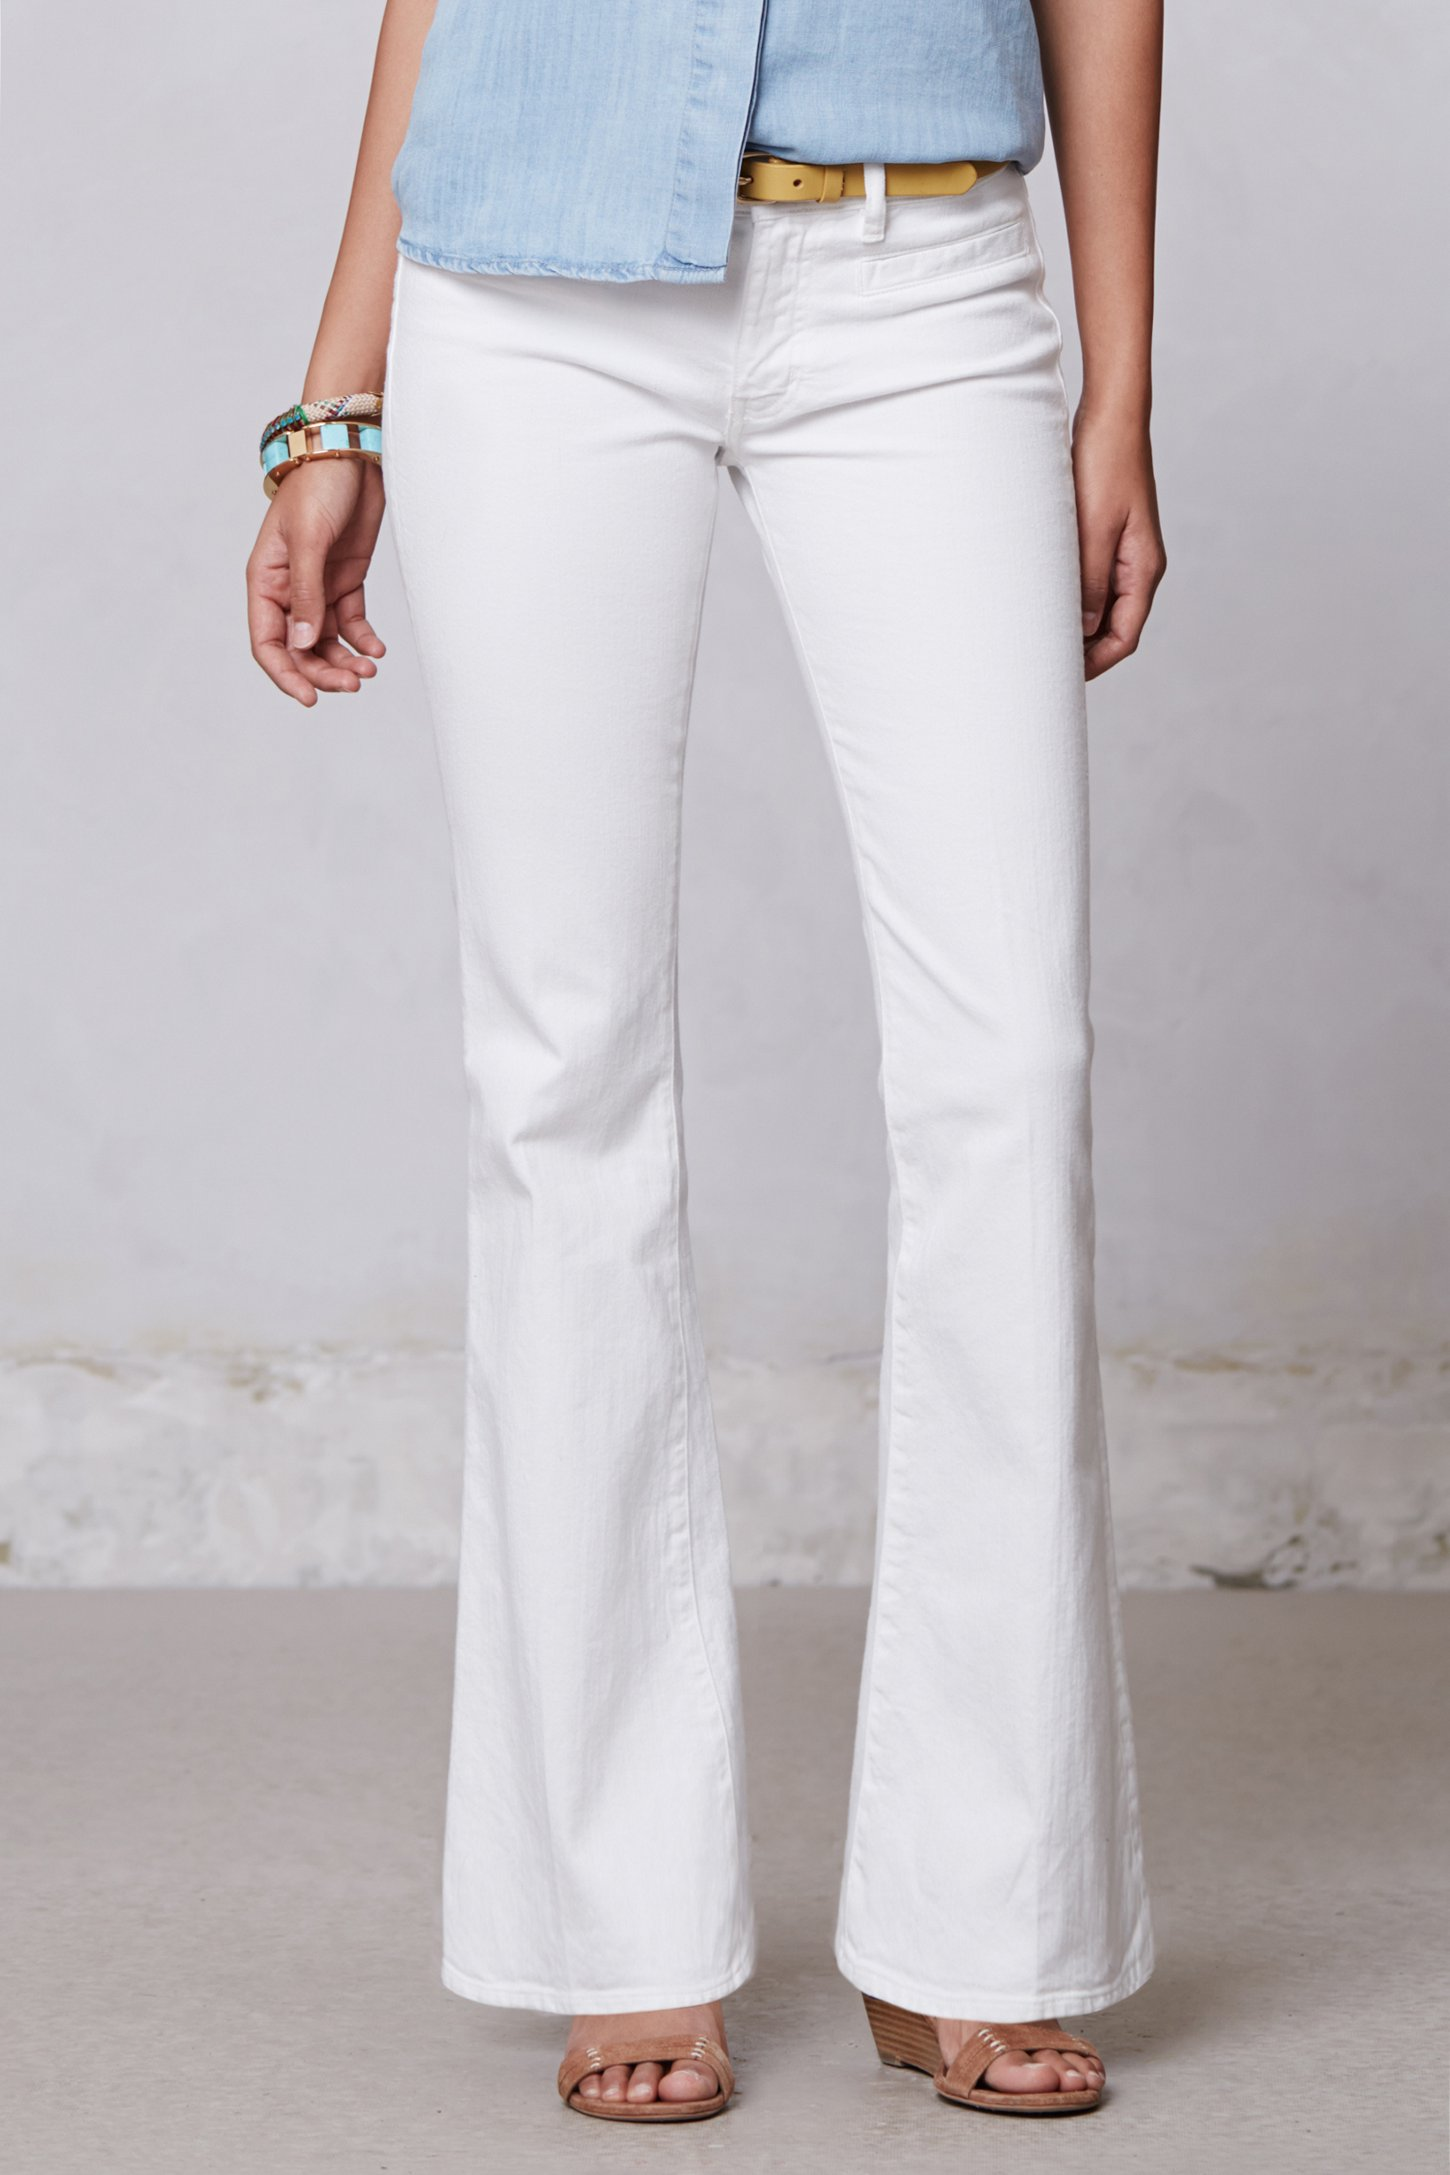 M.i.h jeans Casablanca Flare Petite Jeans in White   Lyst